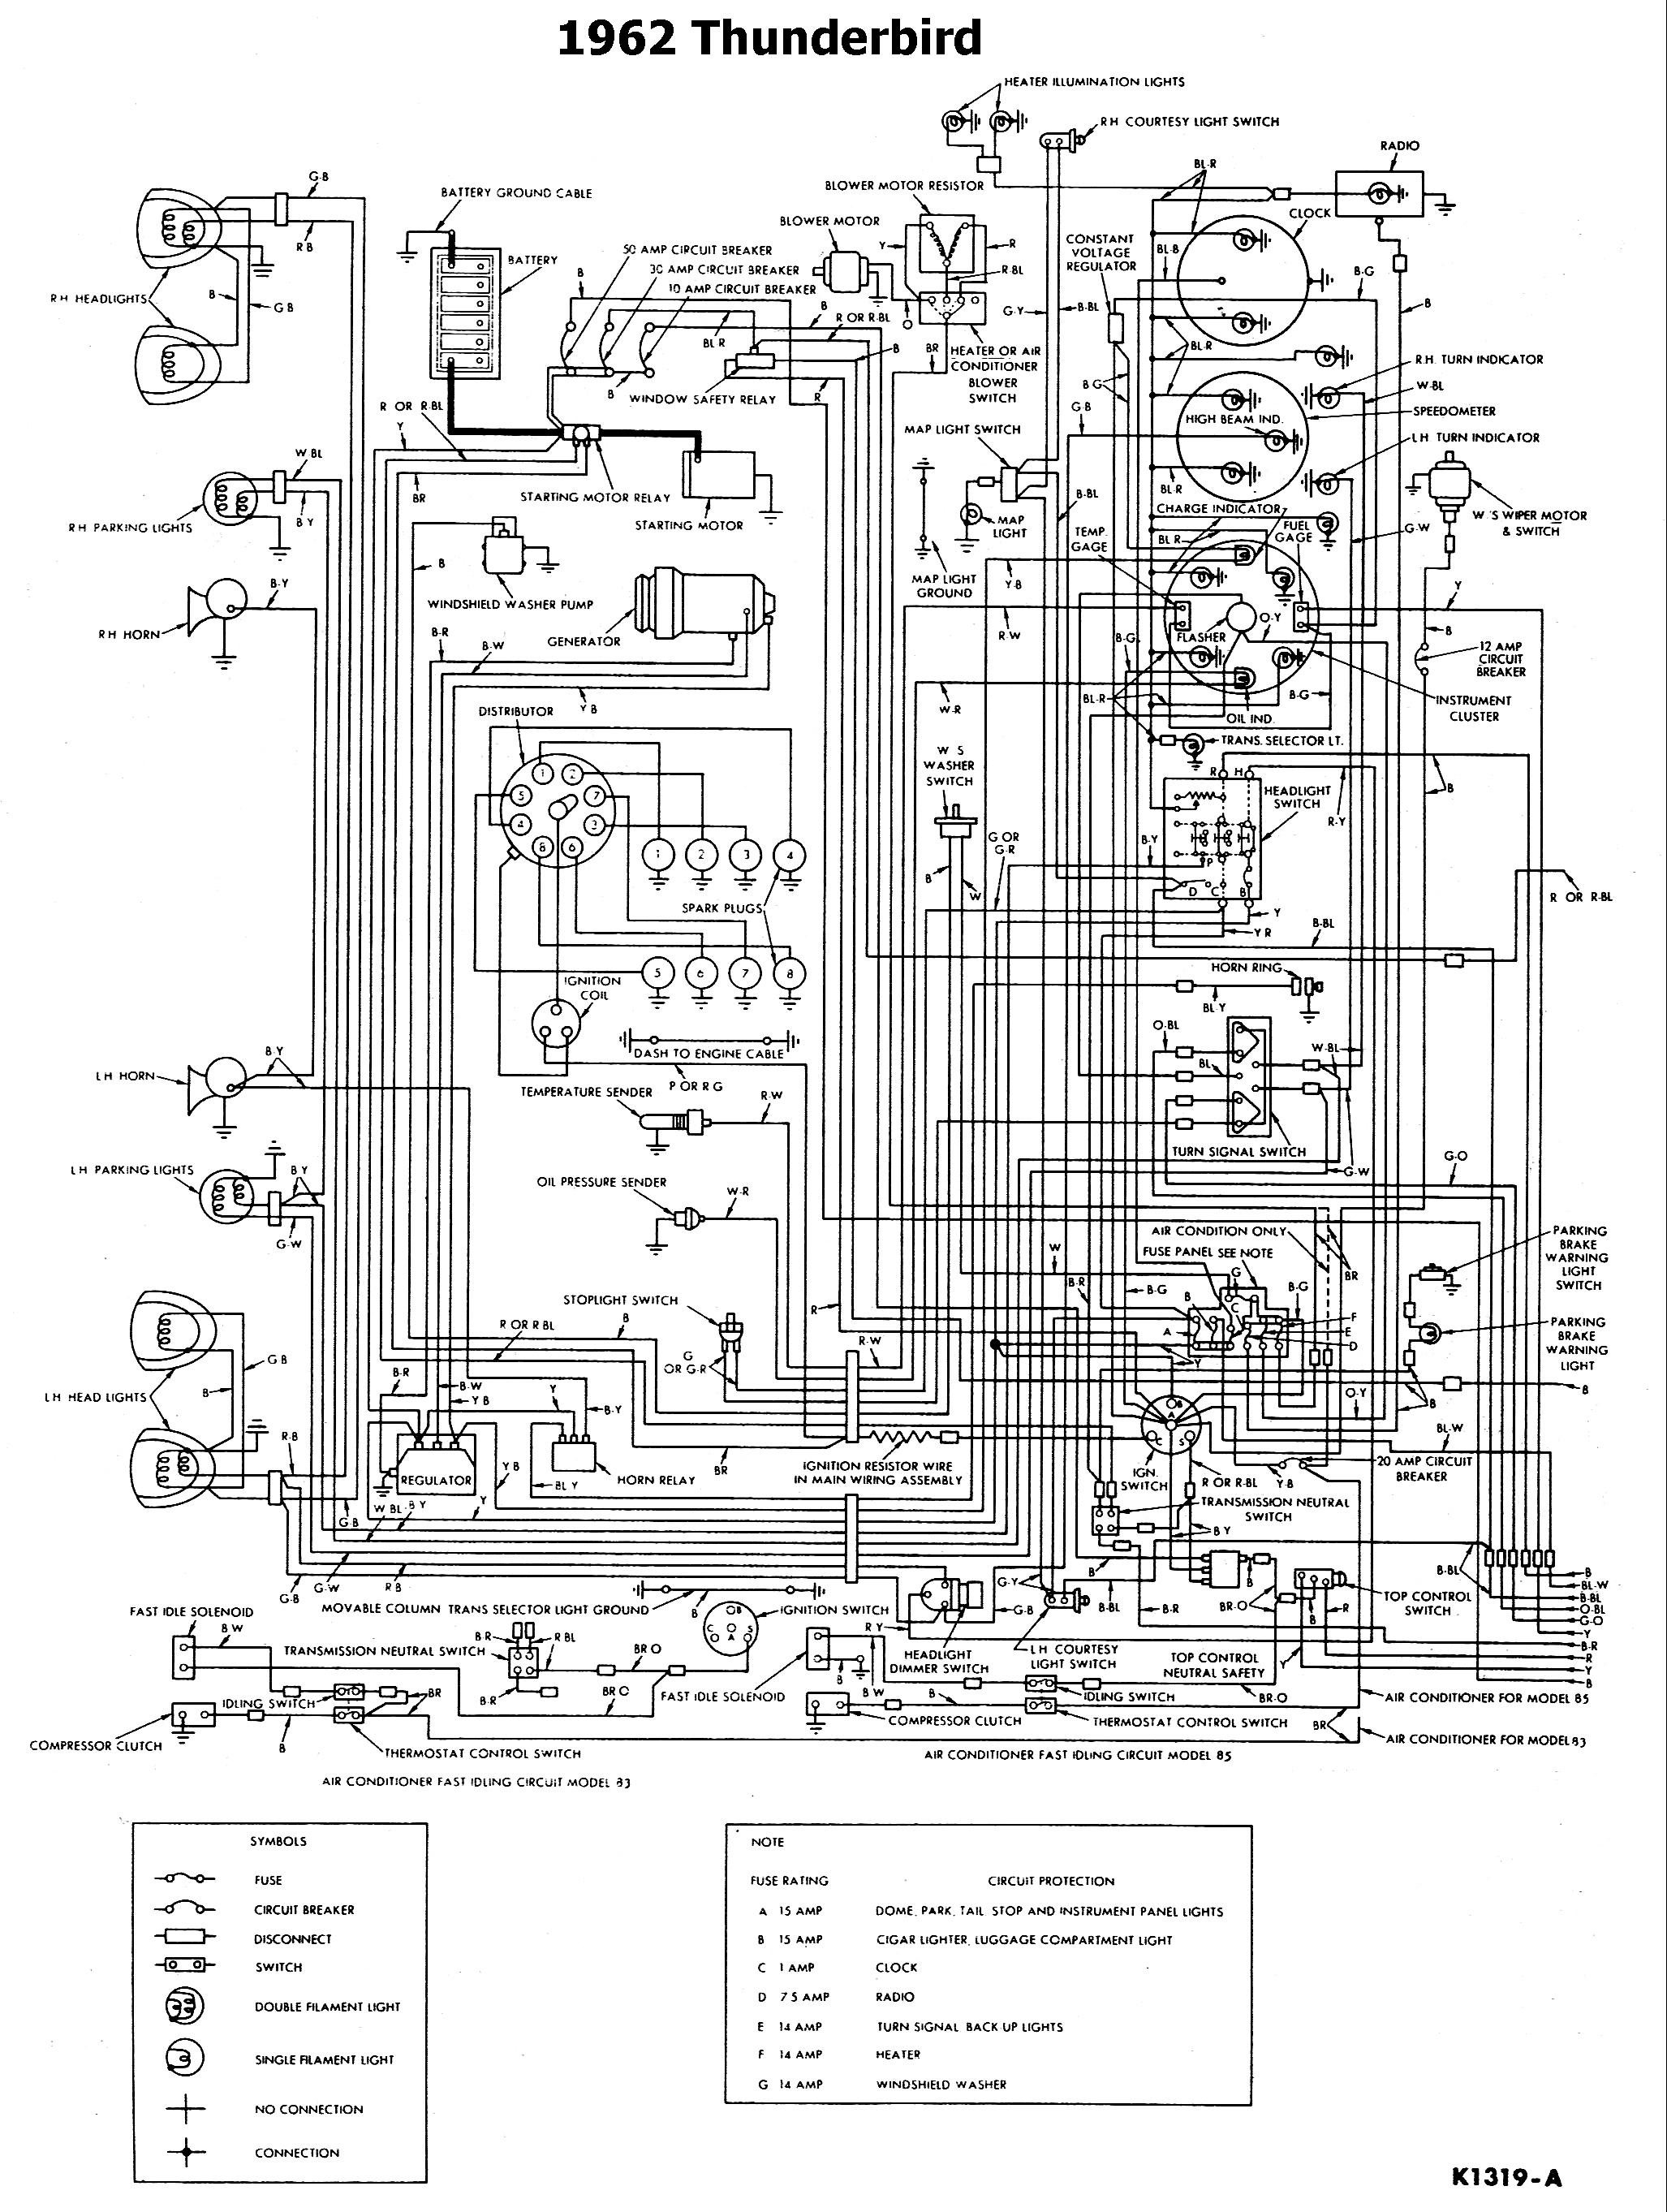 1962 Thunderbird Wiring Diagram Opinions About 1964 Ford Ac I Replaced The Generator With An Alternator In A T Bird Fuel Gauge And Temp Are F 250 Circuit